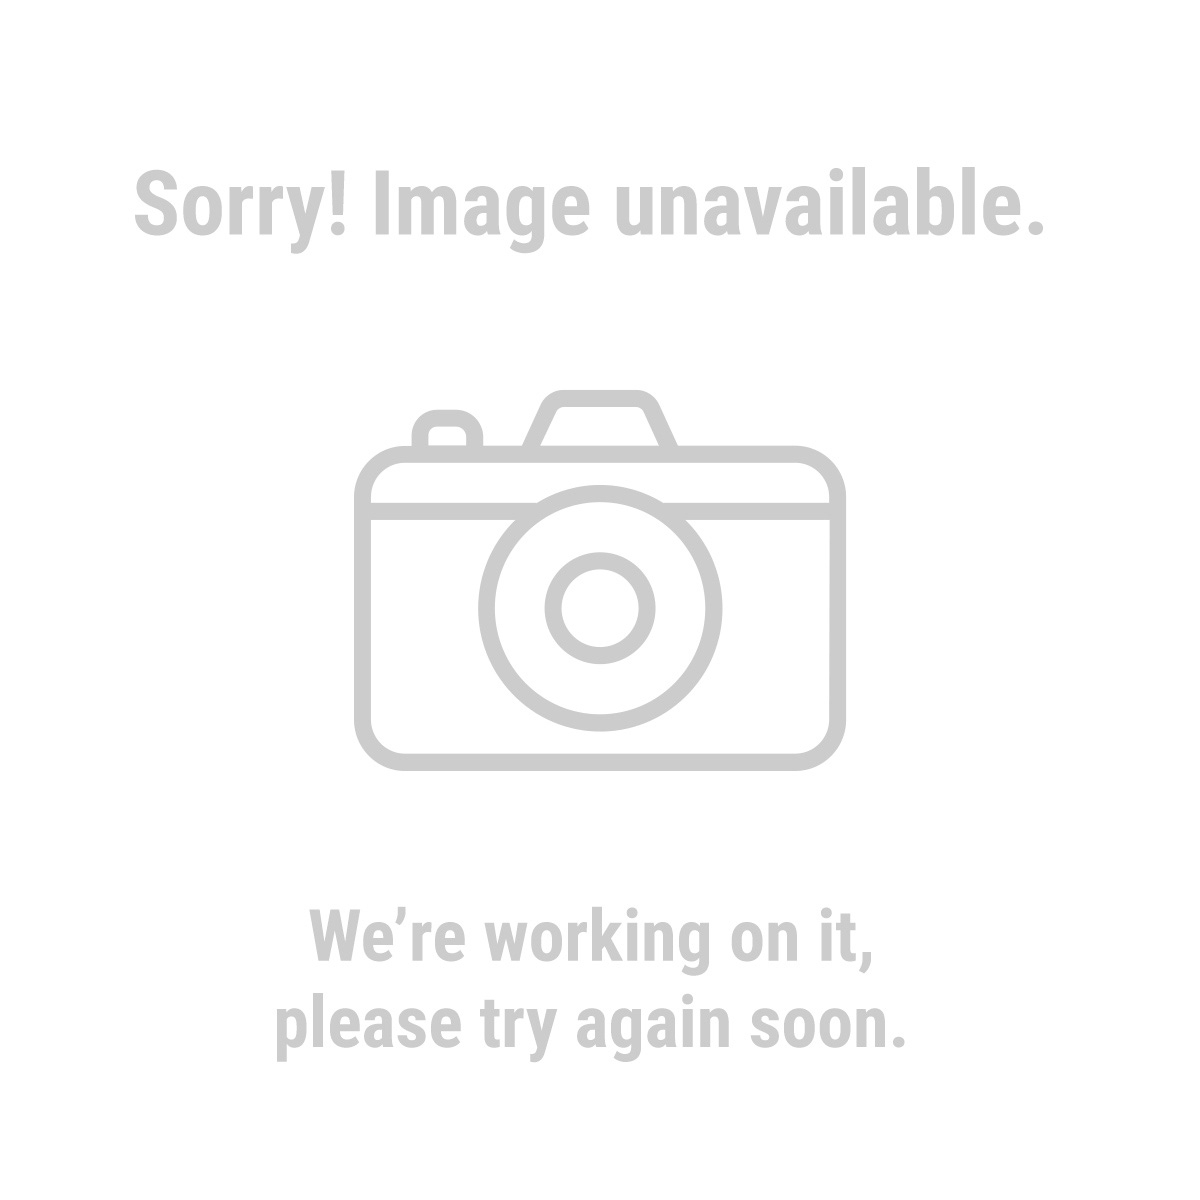 Cen-Tech 46004 R8 Collet Holder